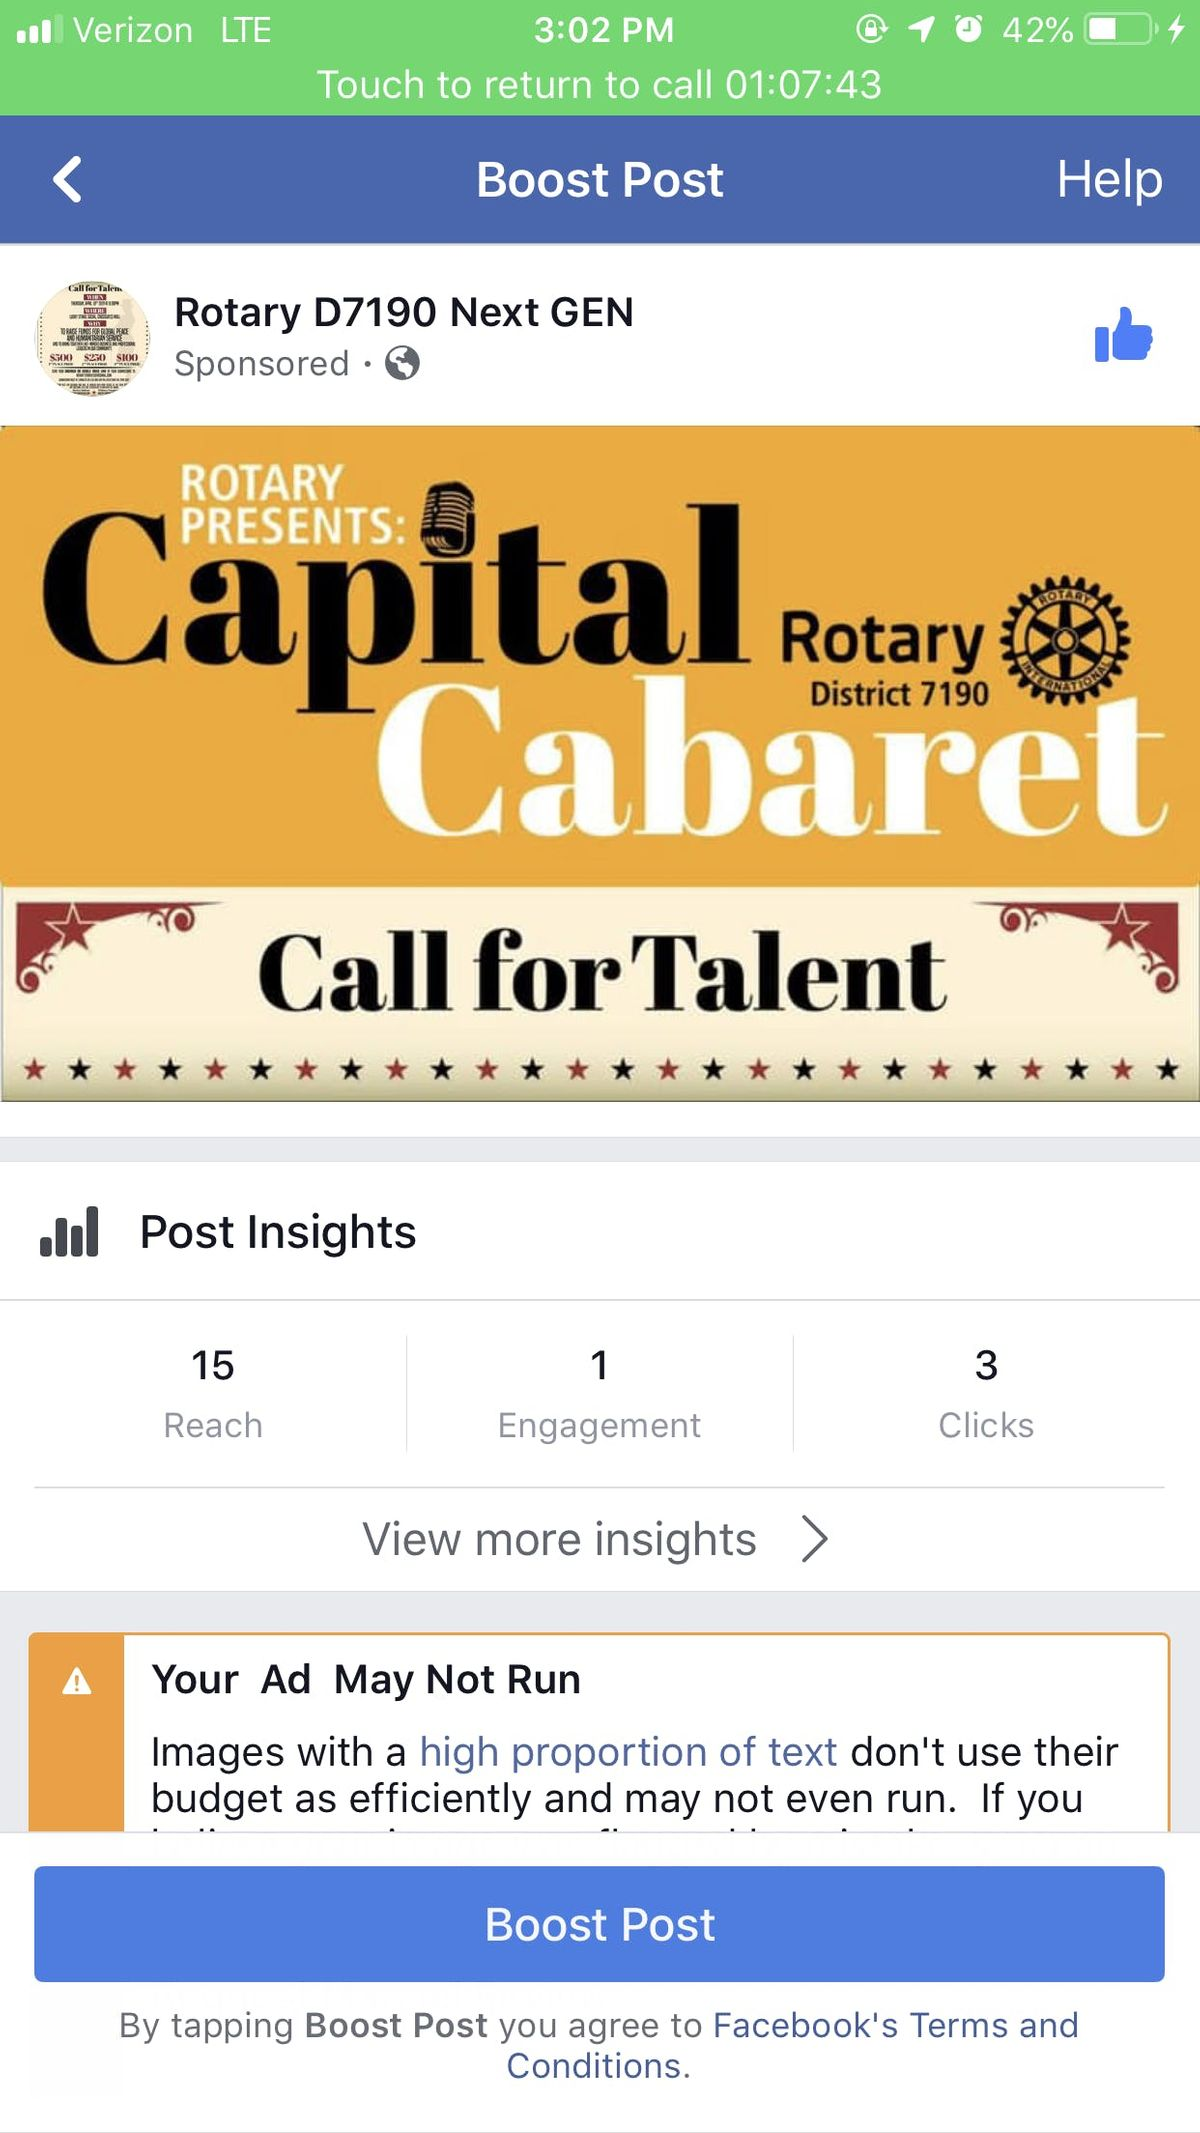 Rotary presents Capital Cabaret